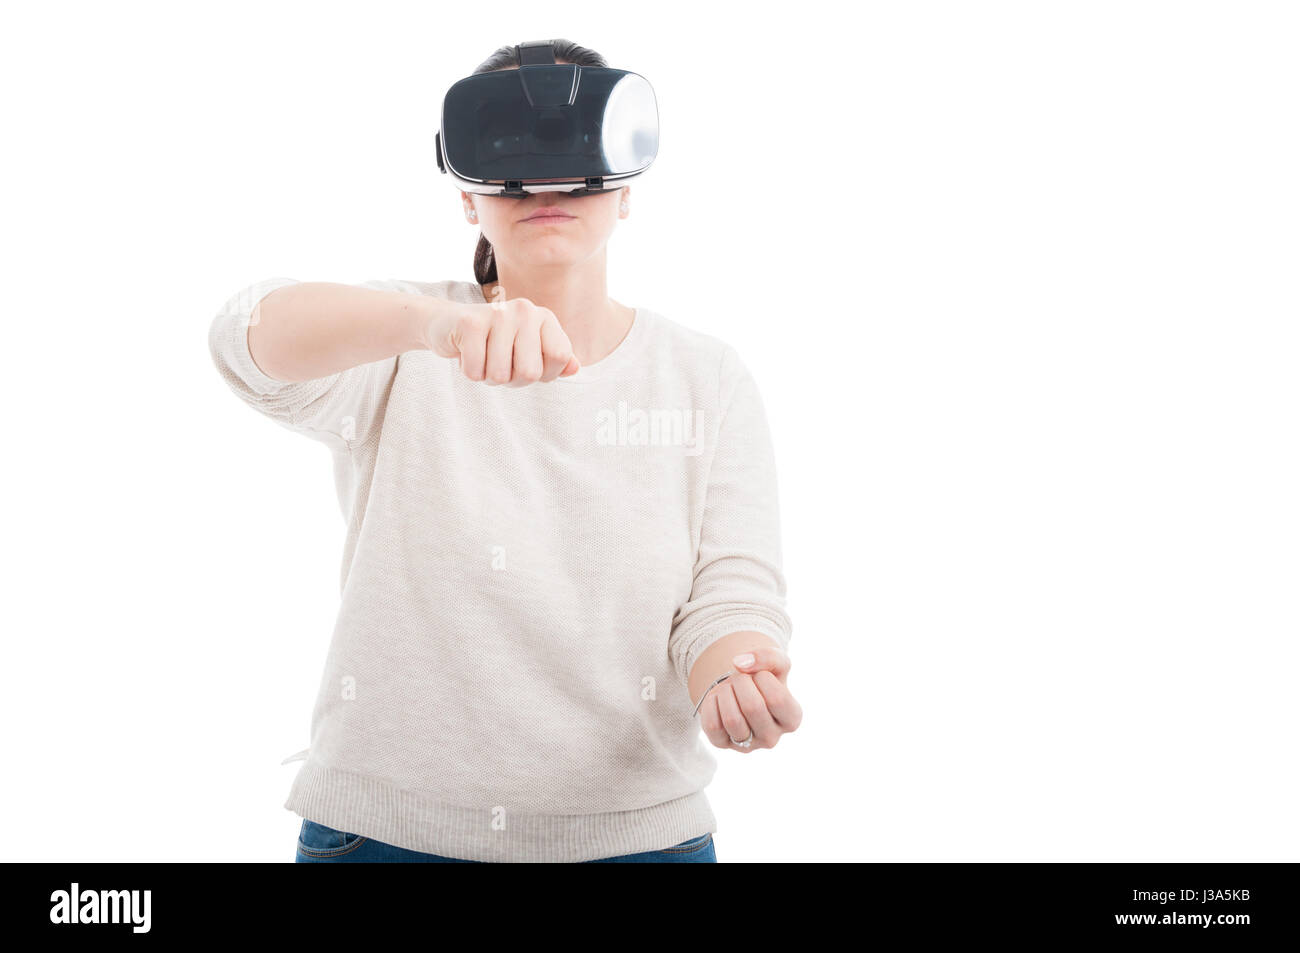 Woman with digital VR headset experiencing gaming simulation on white background with copyspace - Stock Image